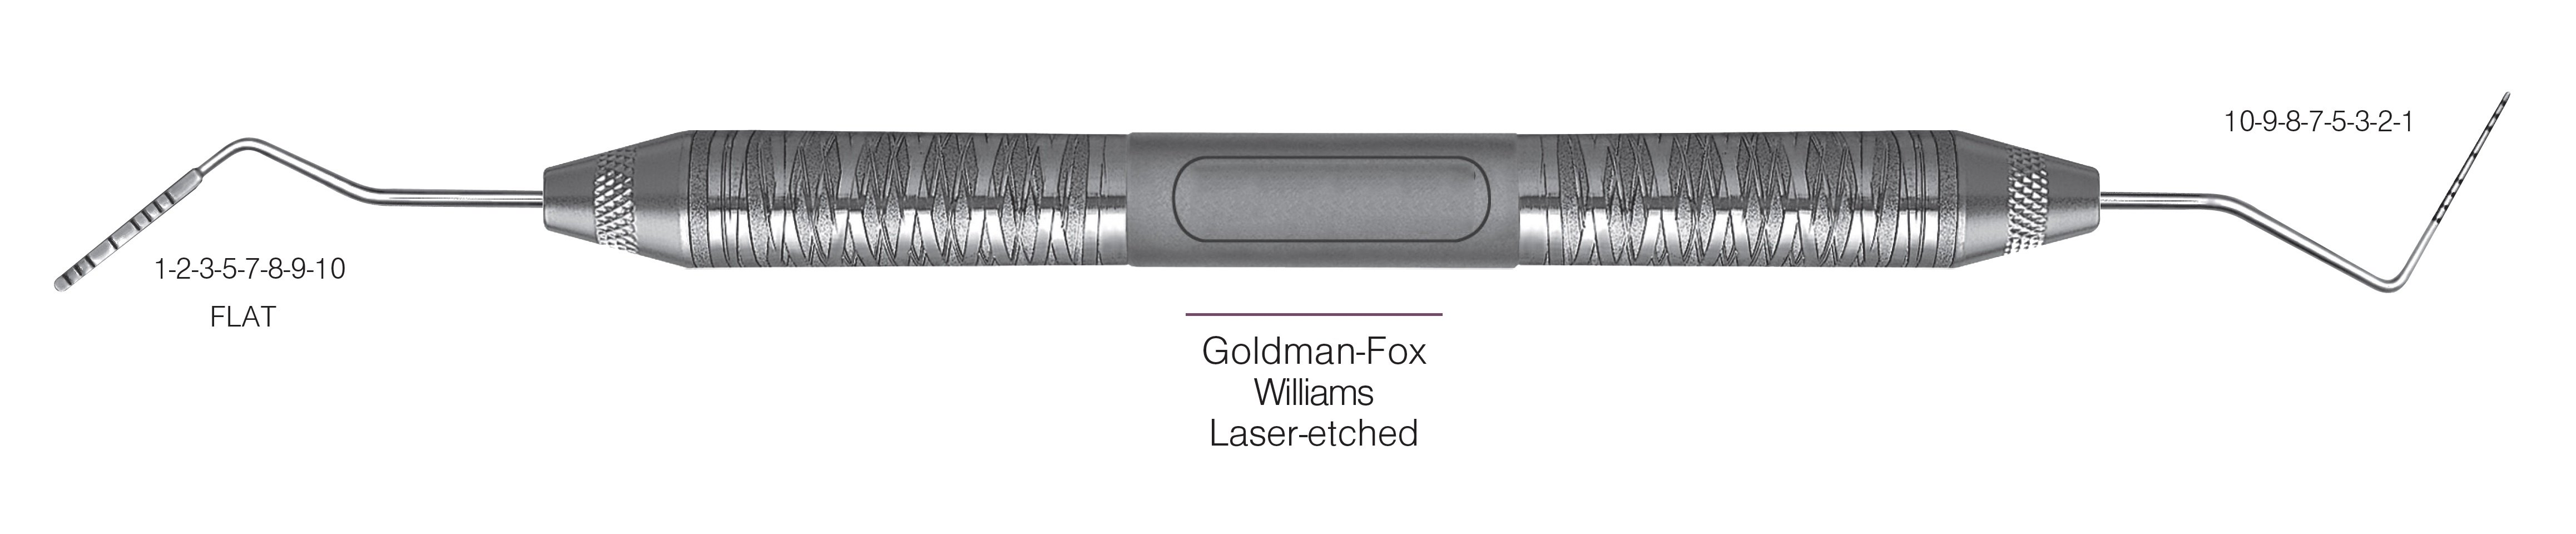 HF-PCPGF-W6-6, PROBES DOUBLE-ENDED Goldman-Fox/Williams, Laser-etched, Black markings, 1-2-3-5-7-8-9-10 mm FLAT & 10-9-8-7-5-3-2-1 mm, Handle Satin Steel, Aluminum Titanium Nitride (AlTiN) Coating, Double Ended